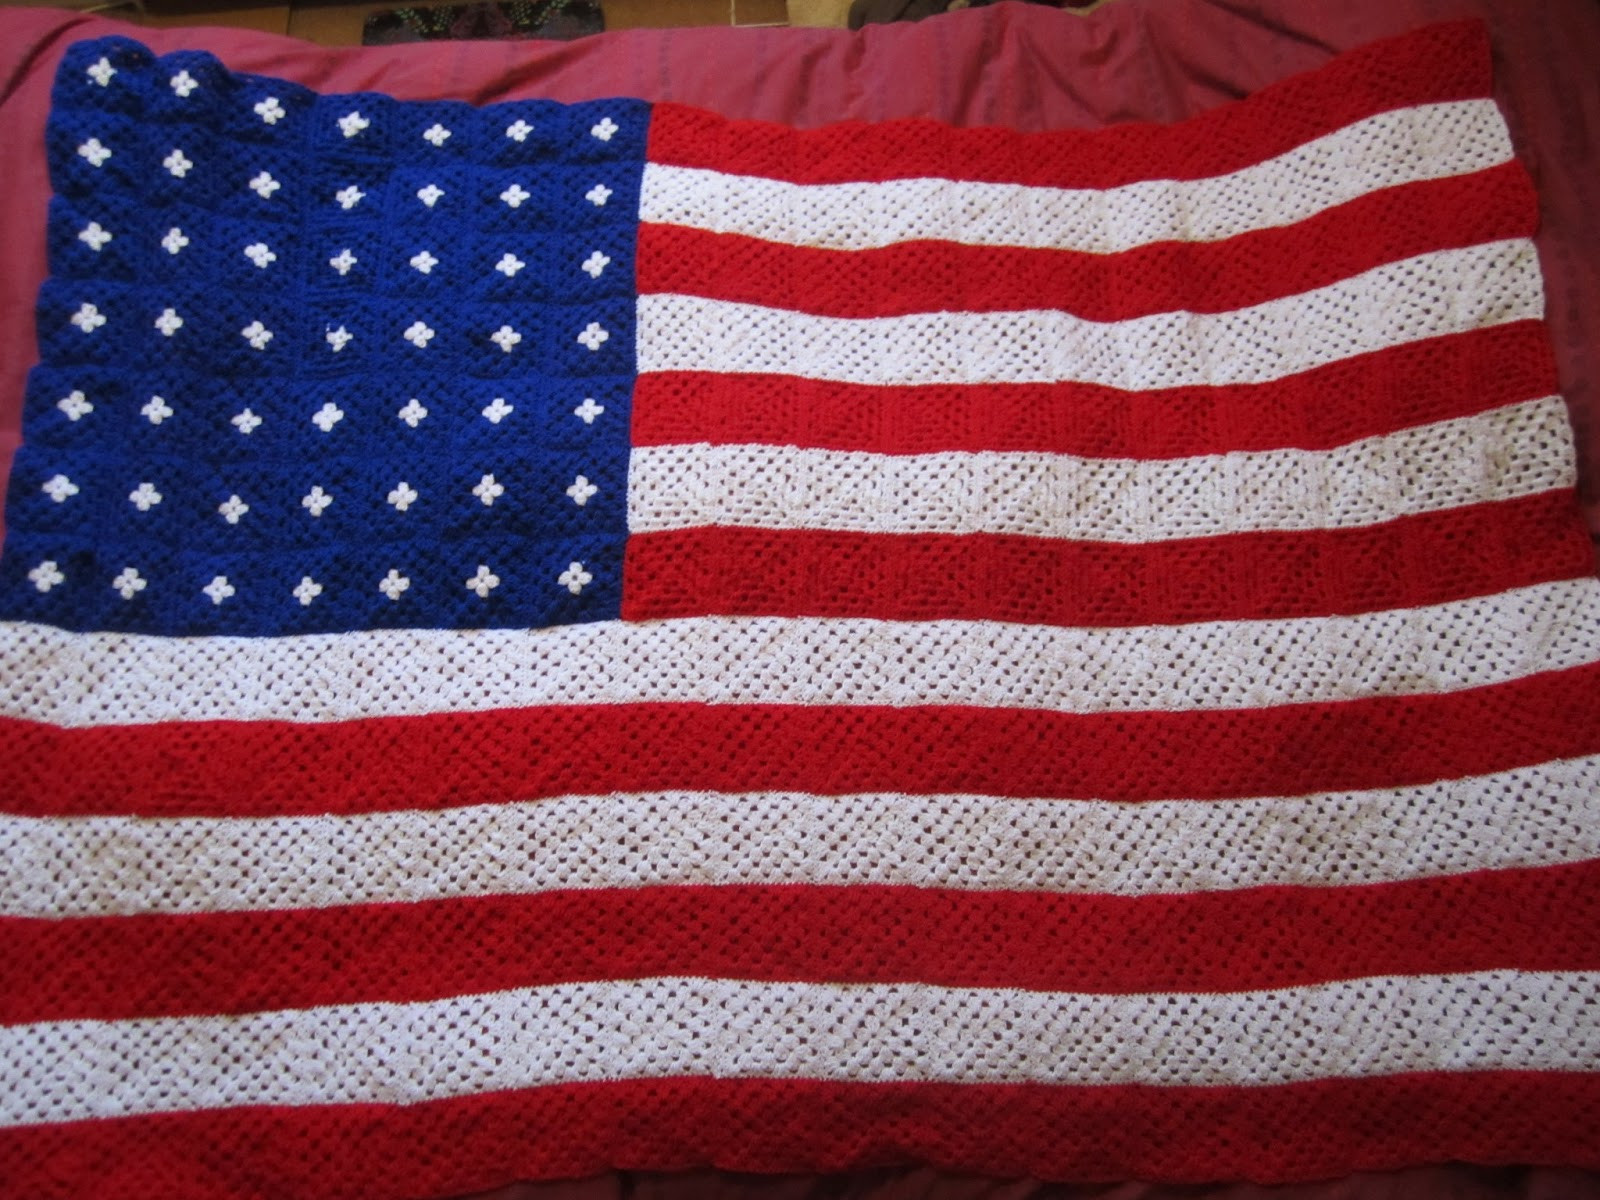 Crochet American Flag Elegant Crochet Cooking and Craft Crochet American Flag Blanket Of Incredible 44 Pics Crochet American Flag